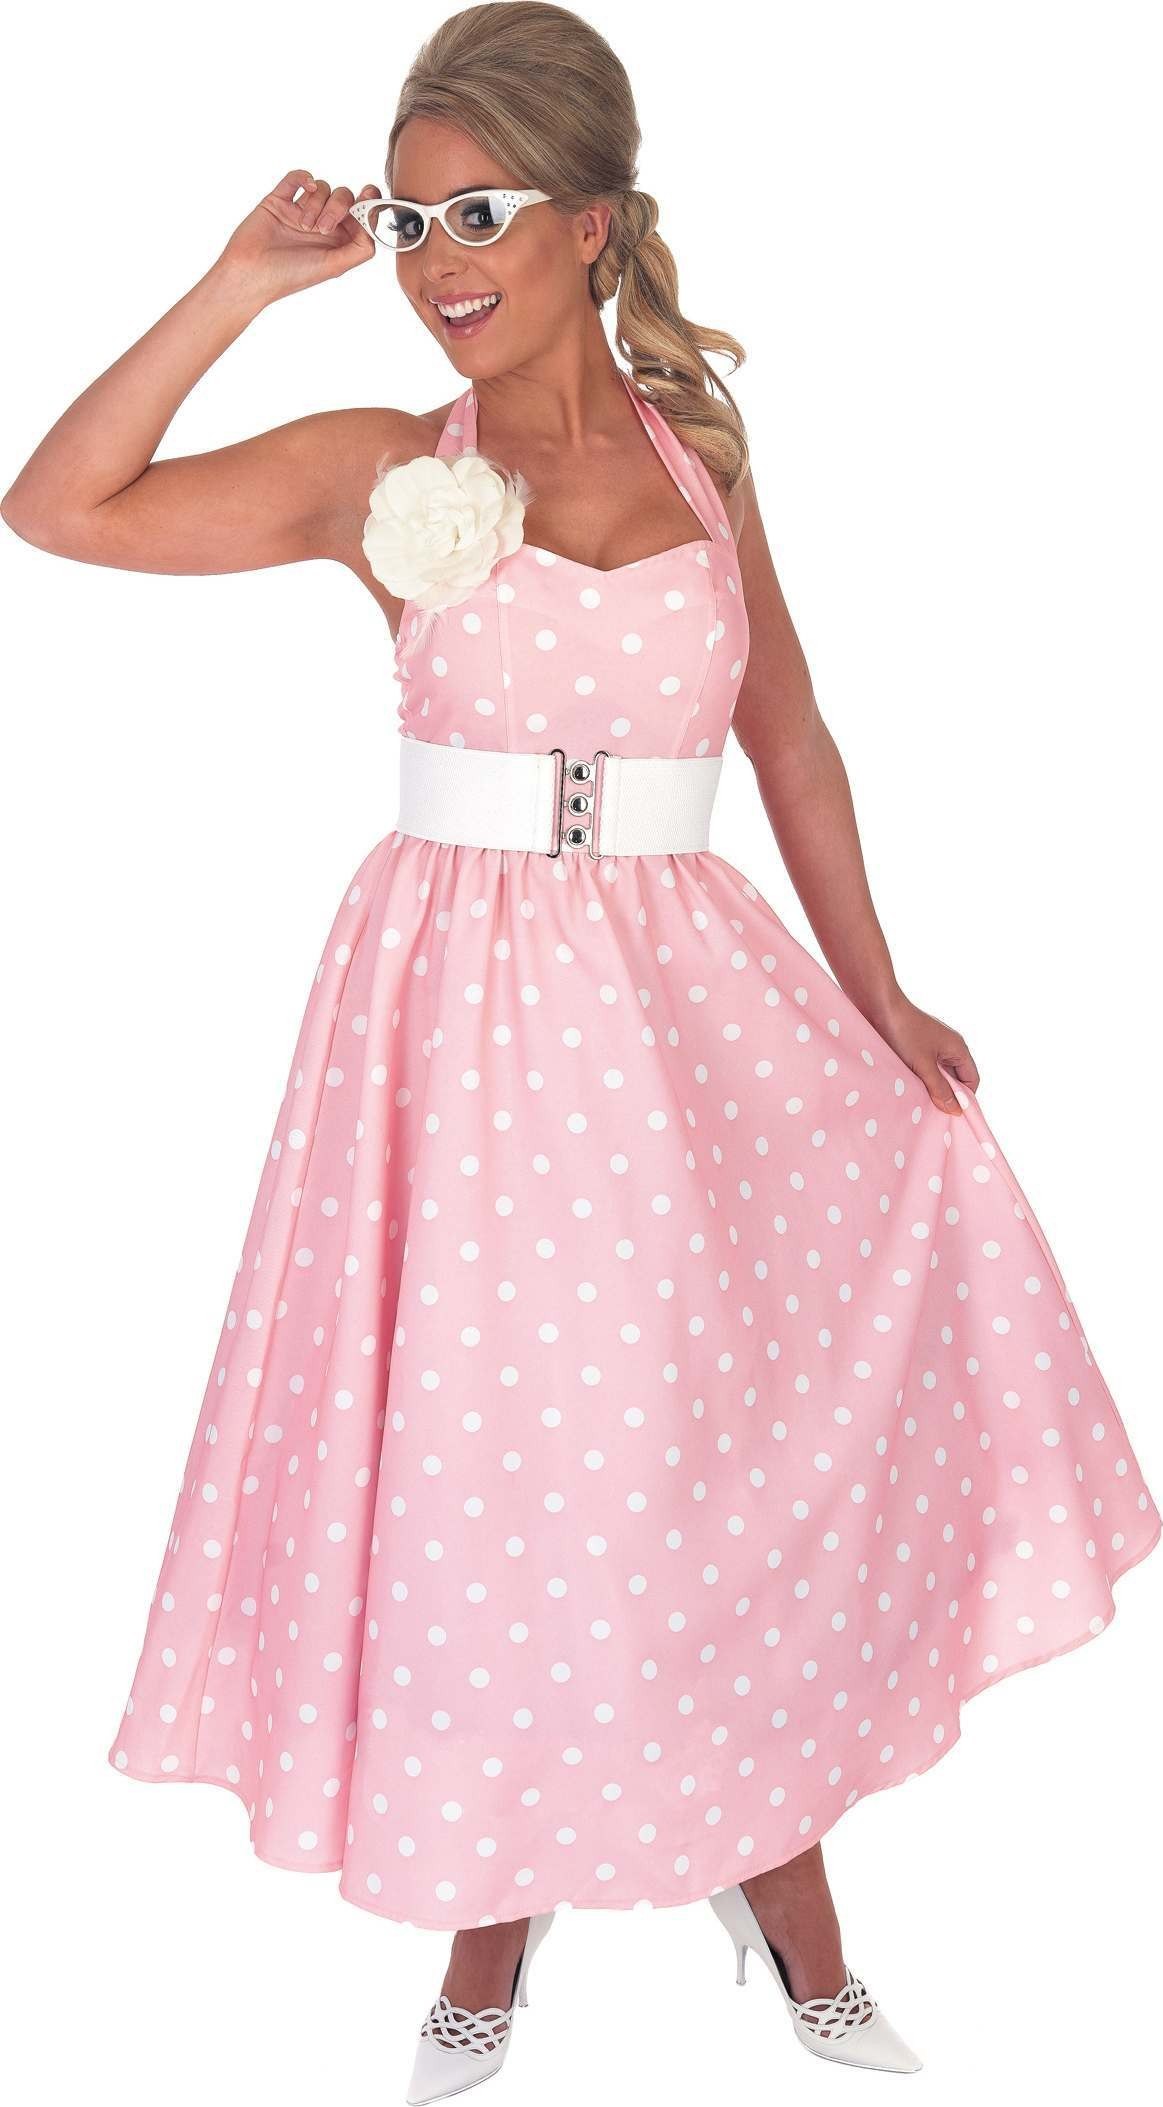 1950S Pink Day Dress Fancy Dress Costume